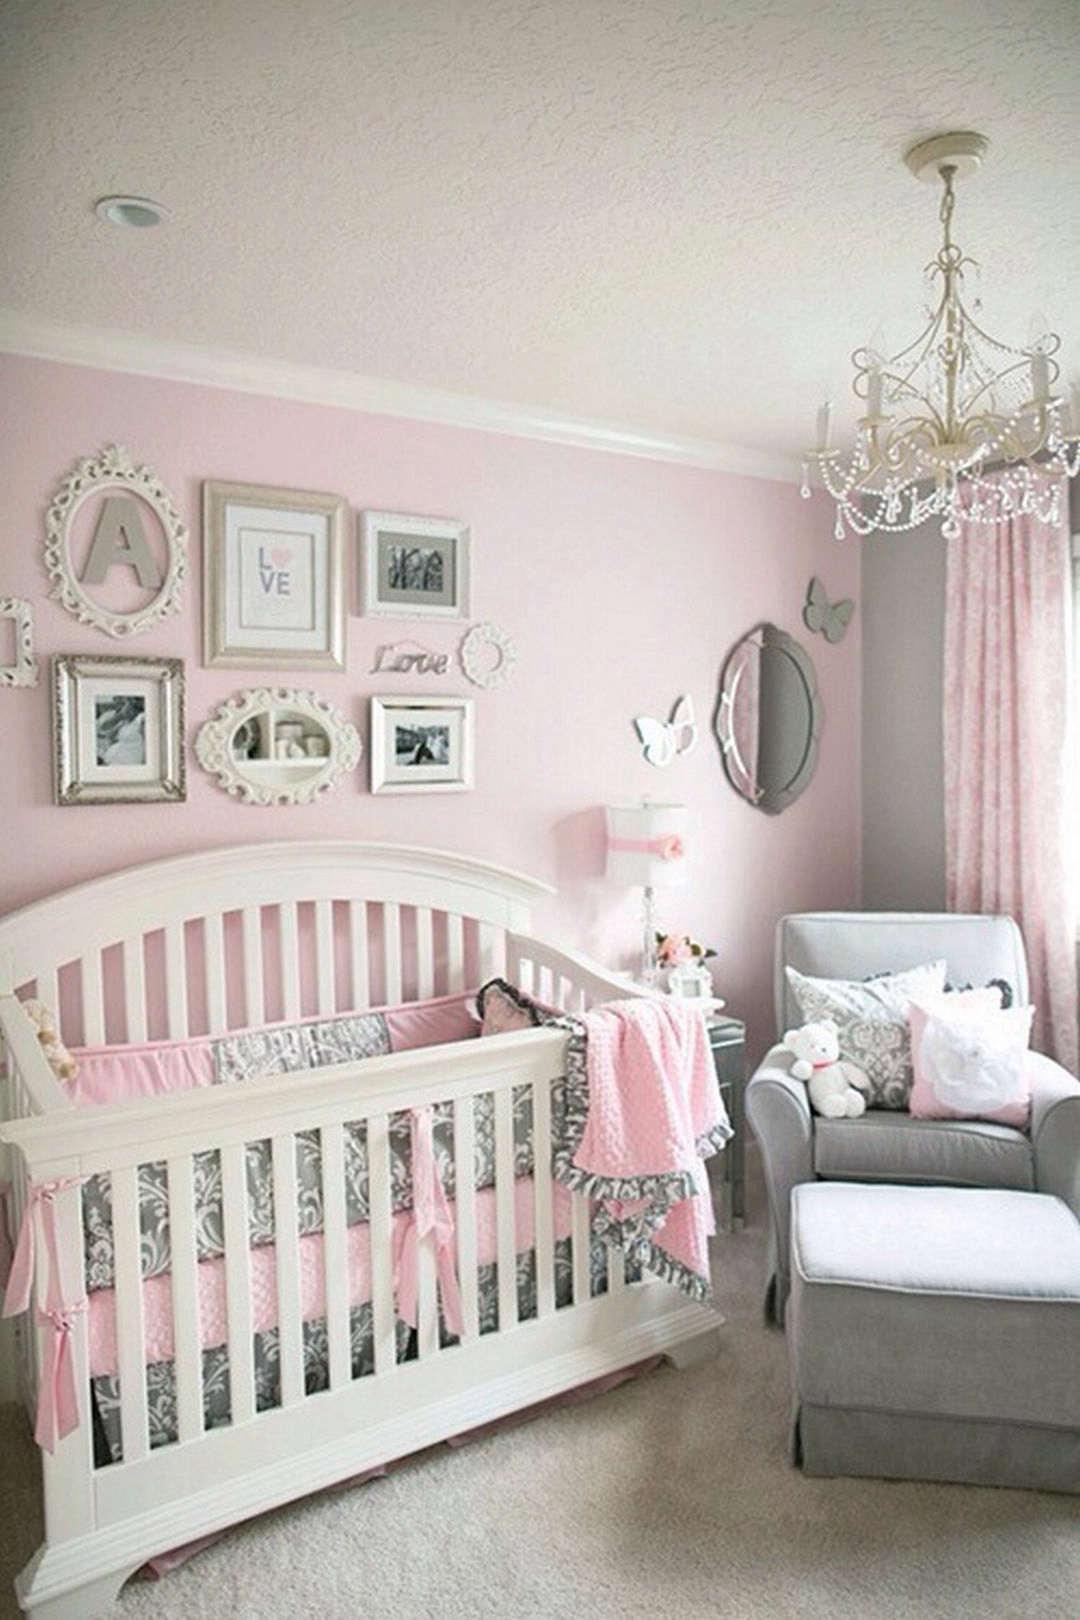 31 cute baby girl nursery ideas https www futuristarchitecture com